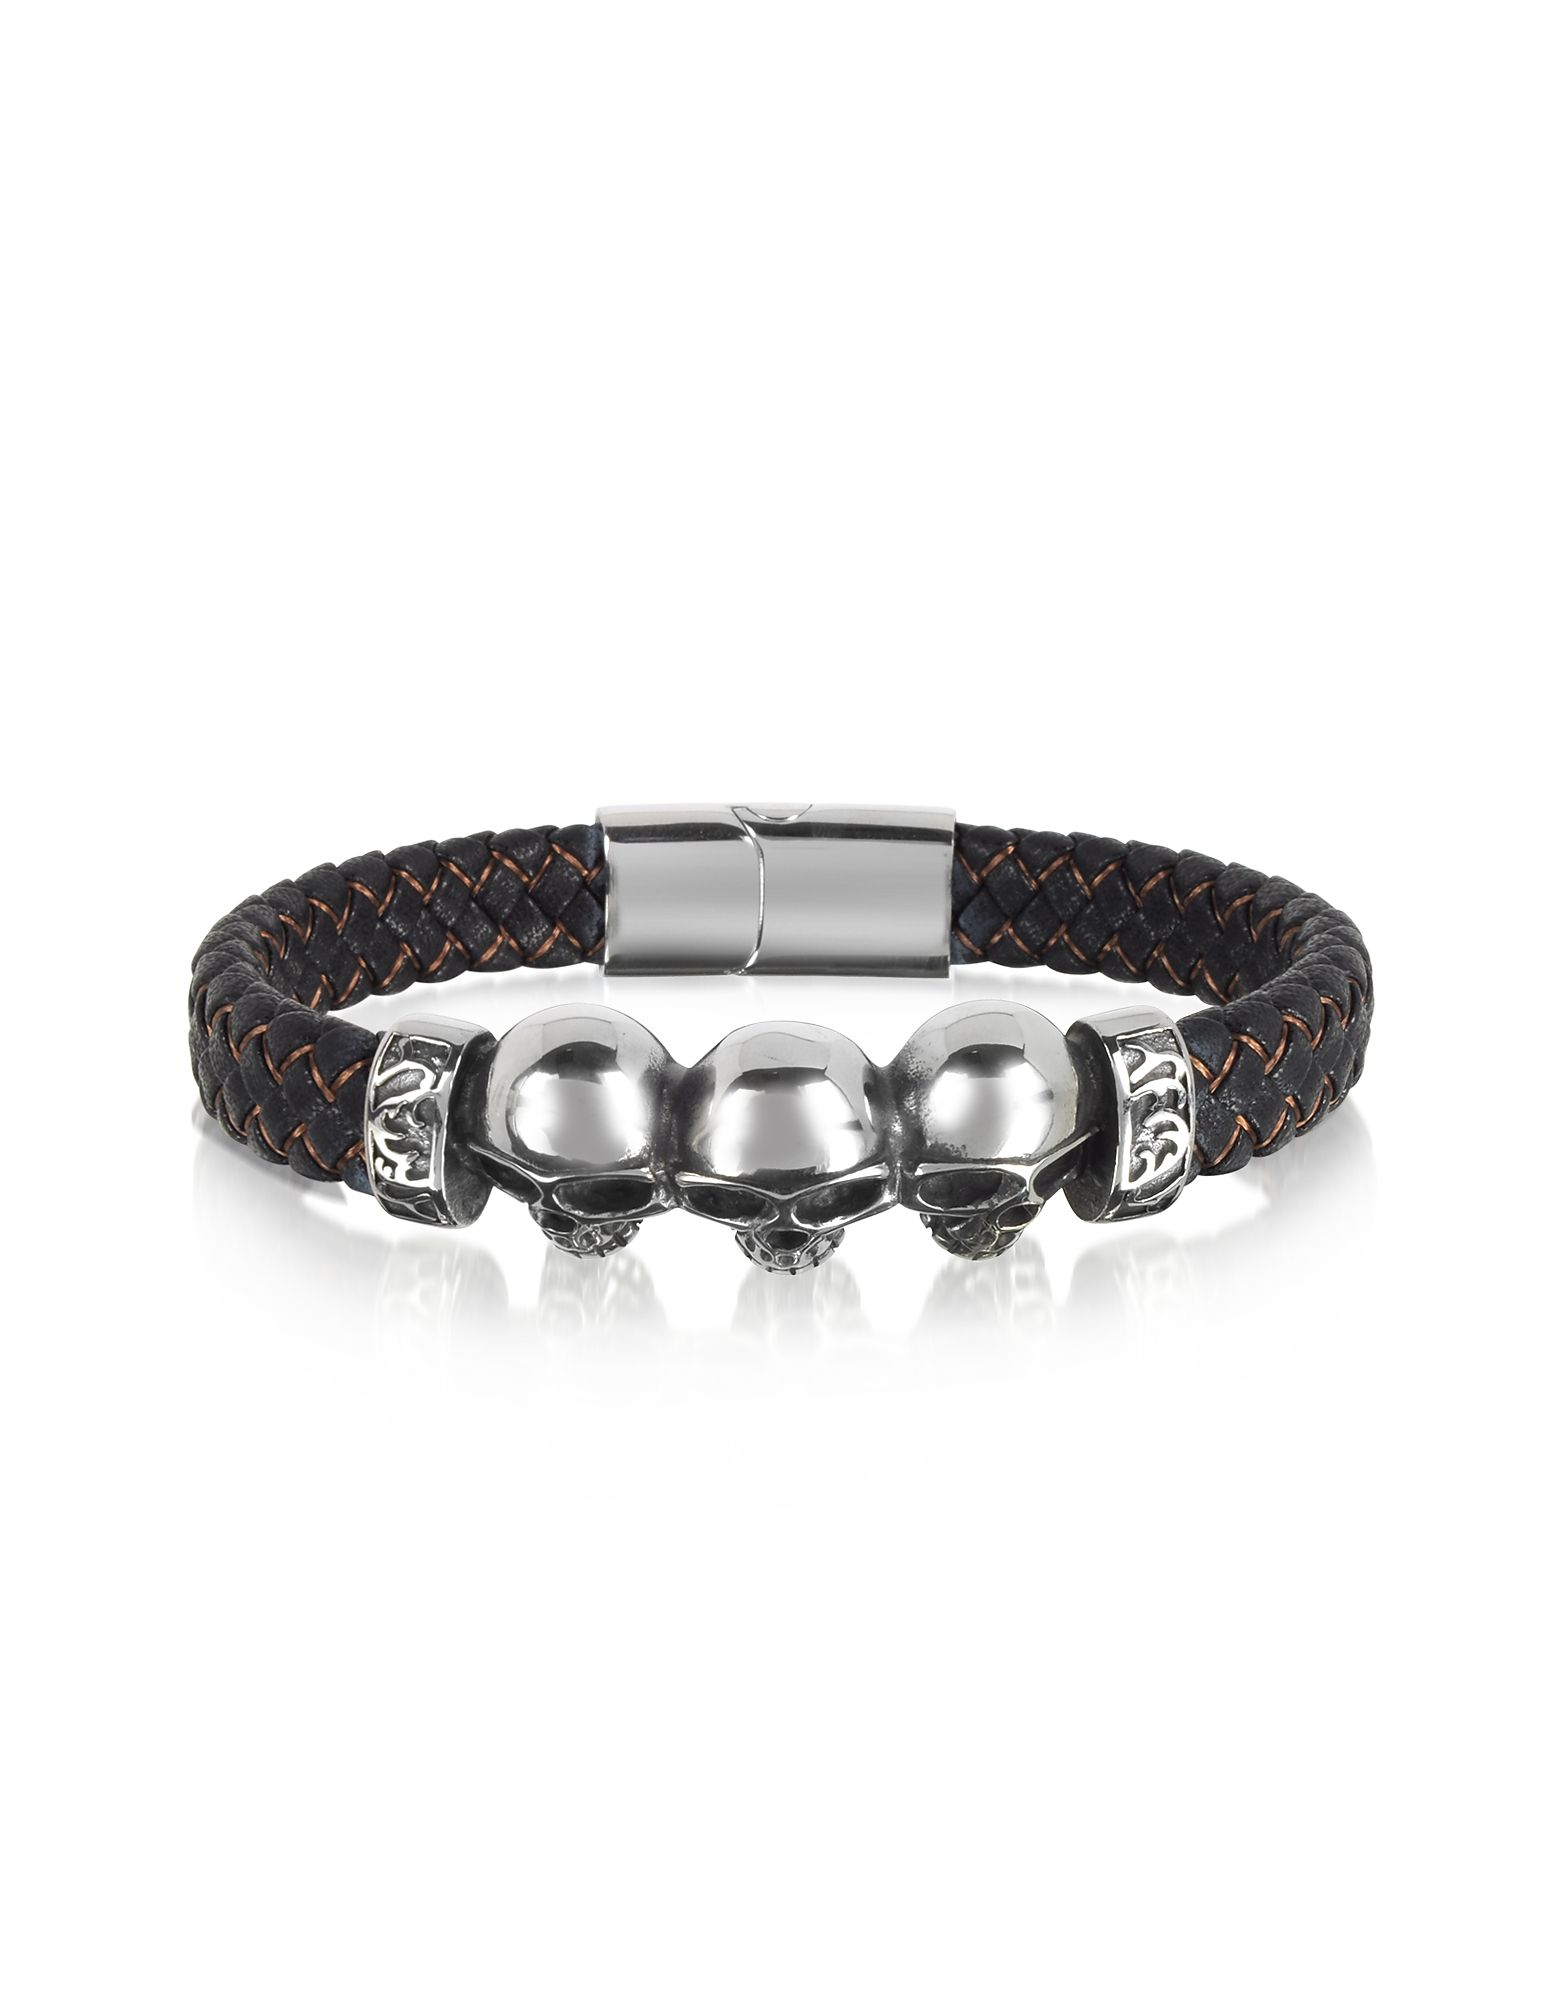 Blackbourne Men's Bracelets, Stainless Steel and Leather Skulls Men's Bracelet